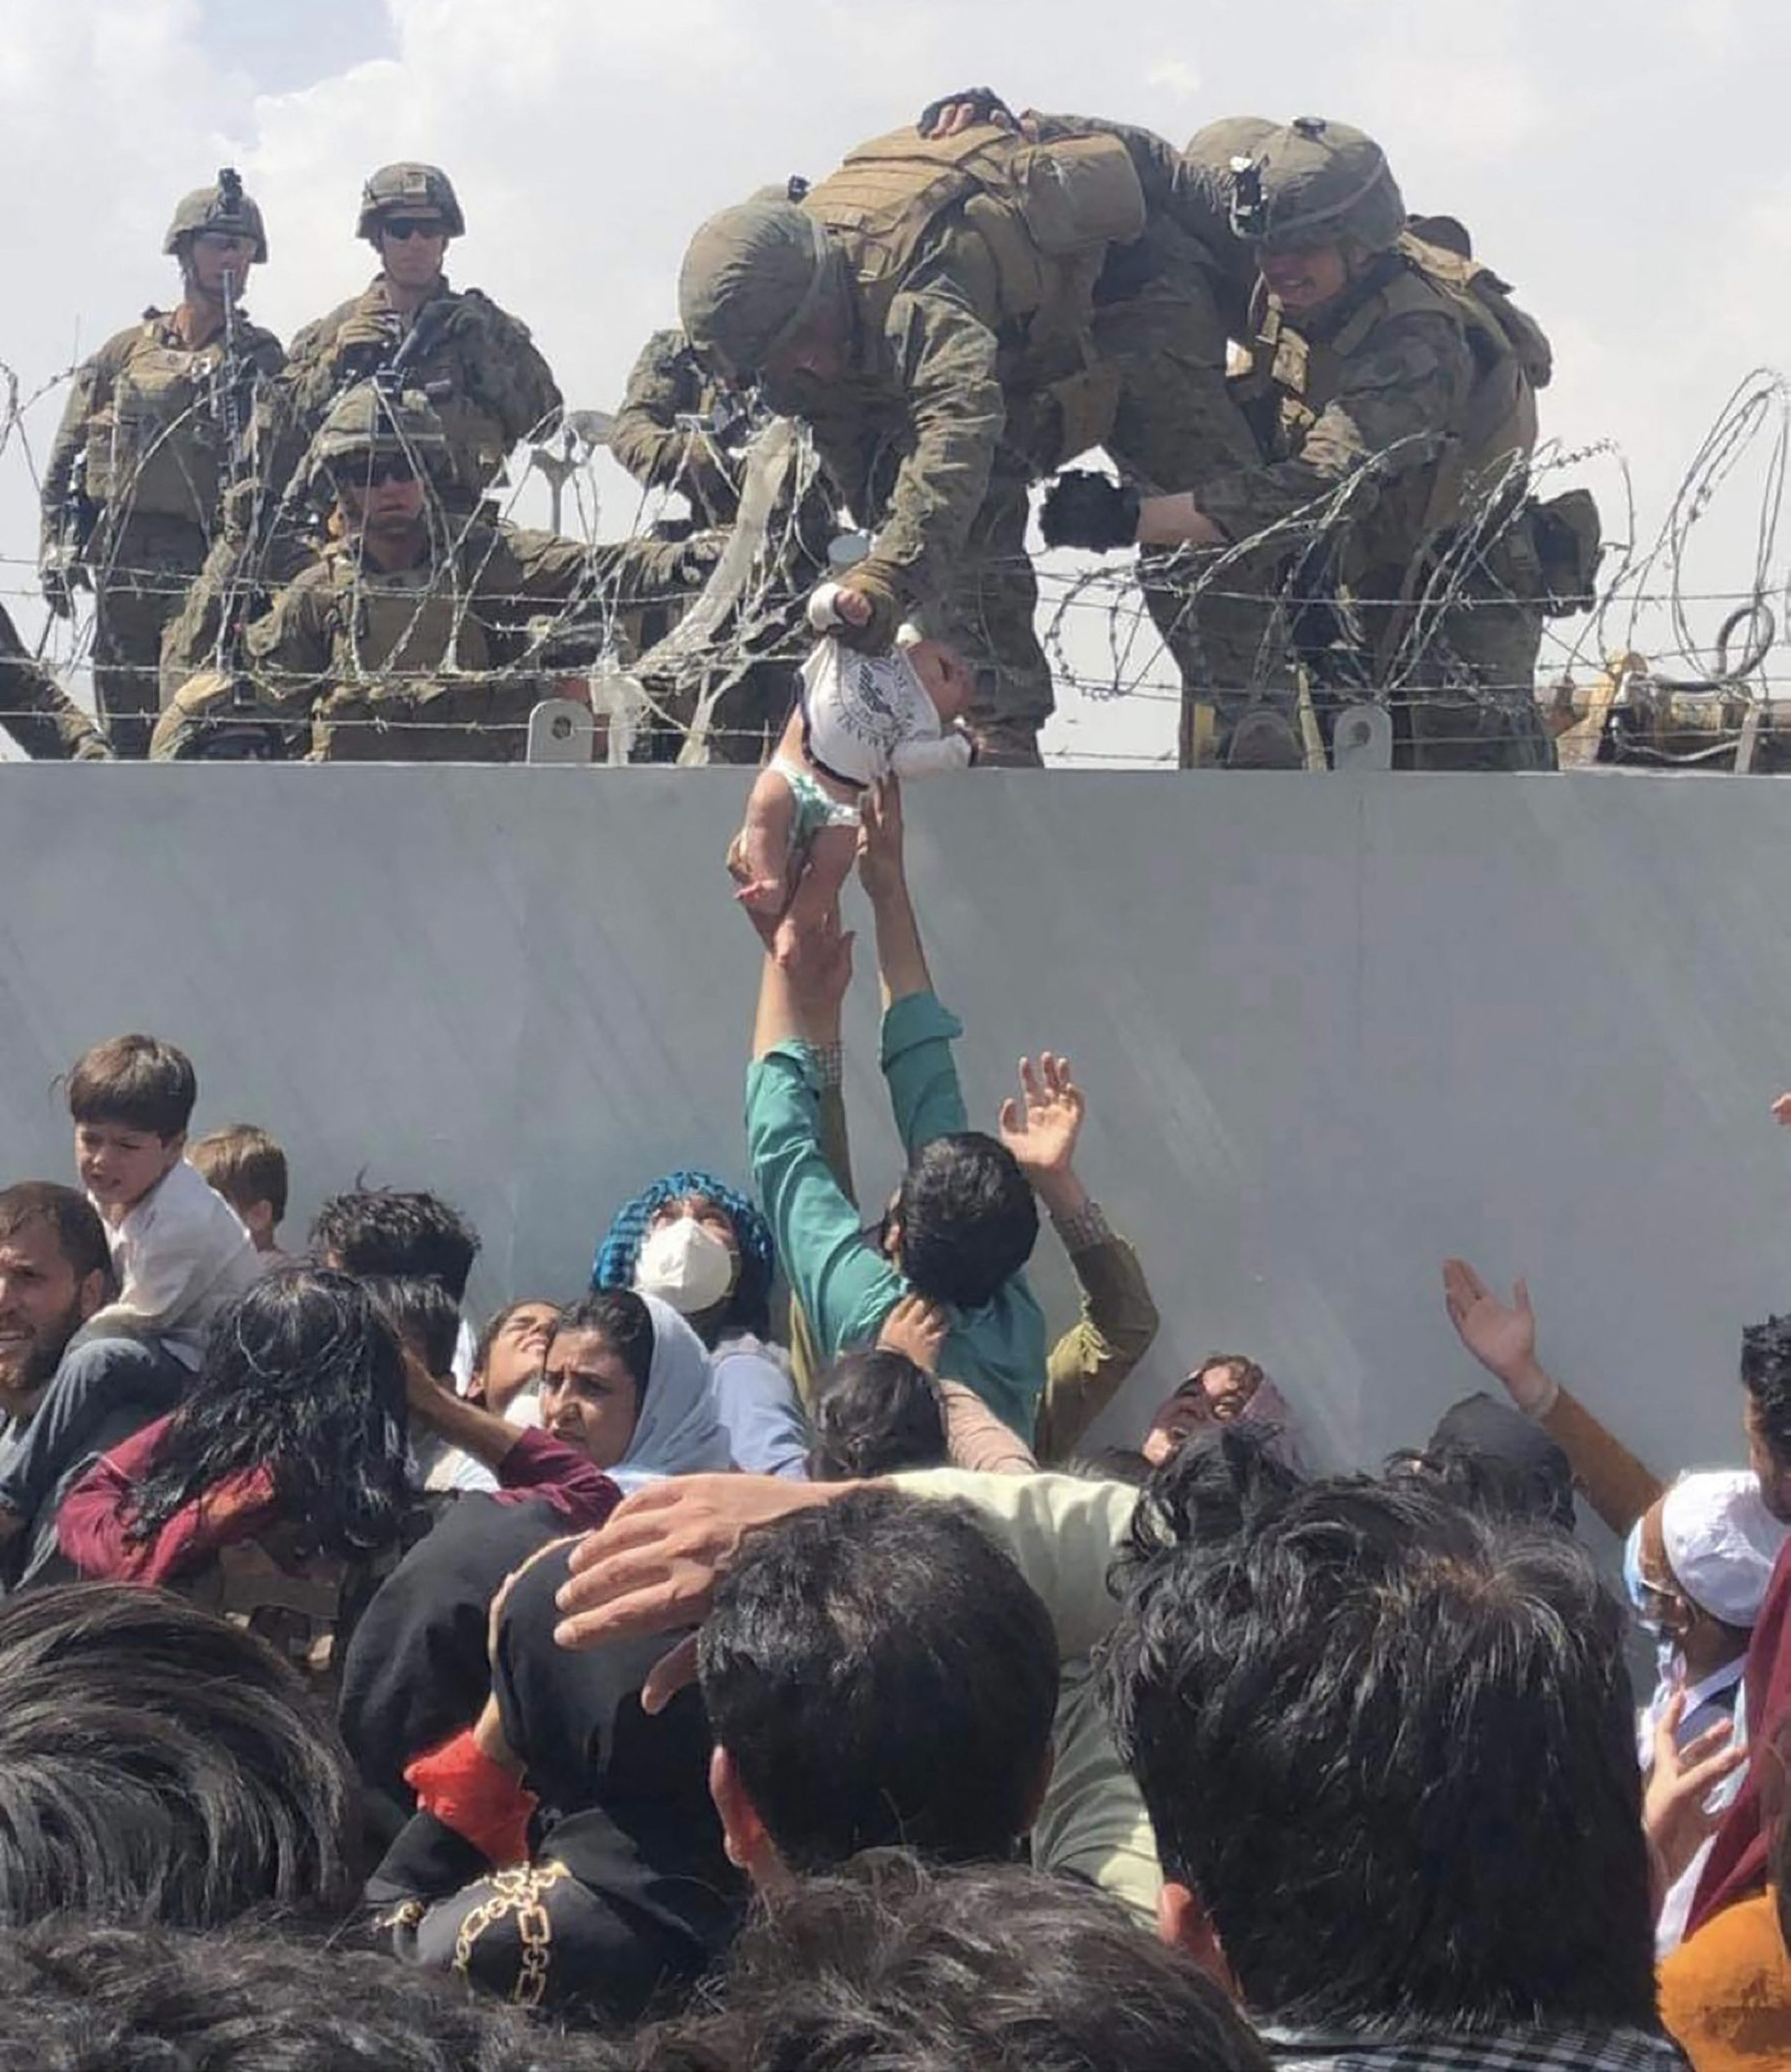 A US Marine grabs an infant over a fence of barbed wire during an evacuation at Hamid Karzai International Airport in Kabul on August 19, 2021. (Courtesy of Omar Haidiri/AFP via Getty Images)